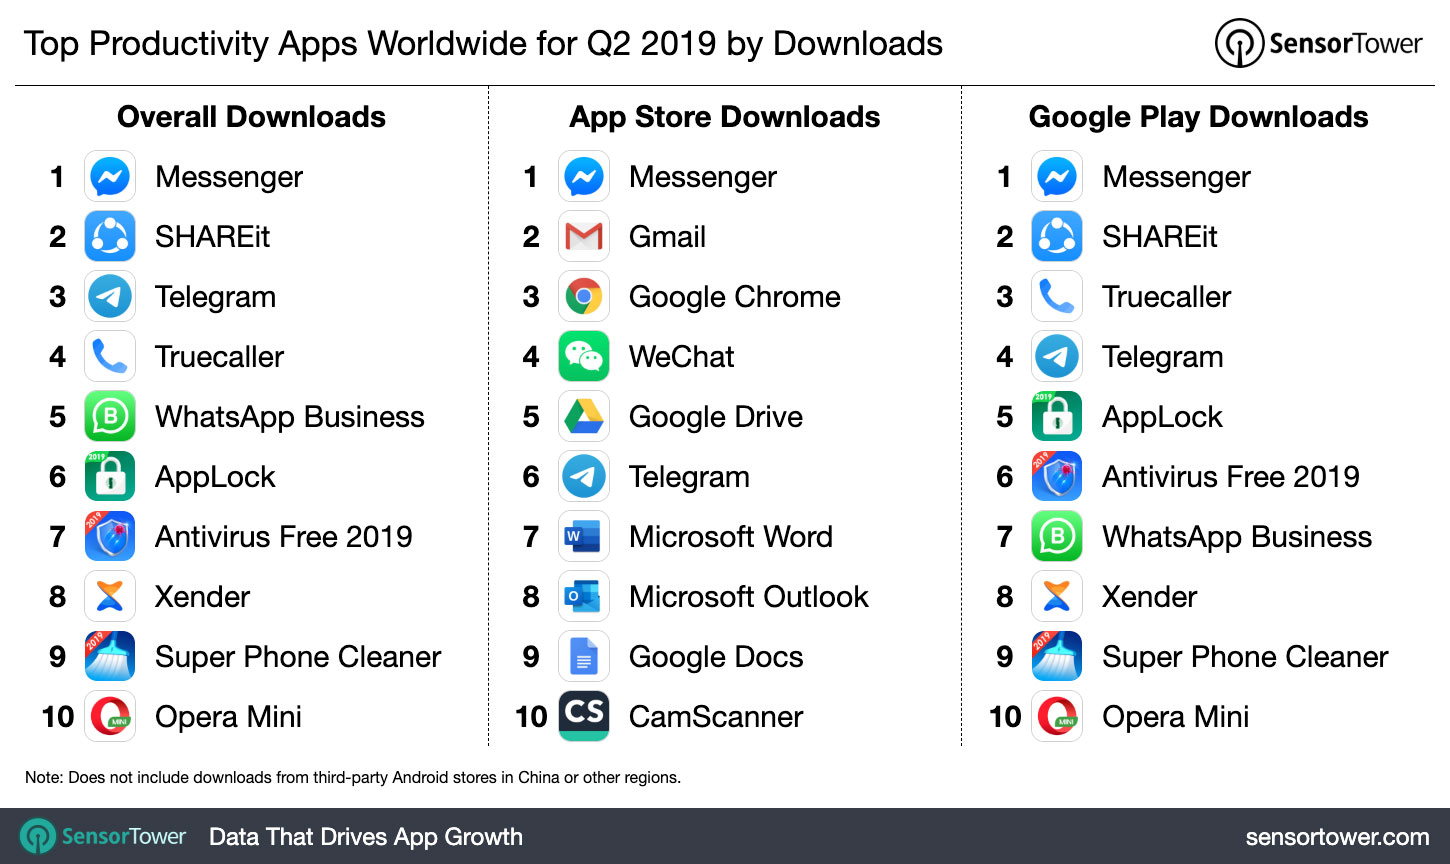 Top Productivity Apps Worldwide for Q2 2019 by Downloads